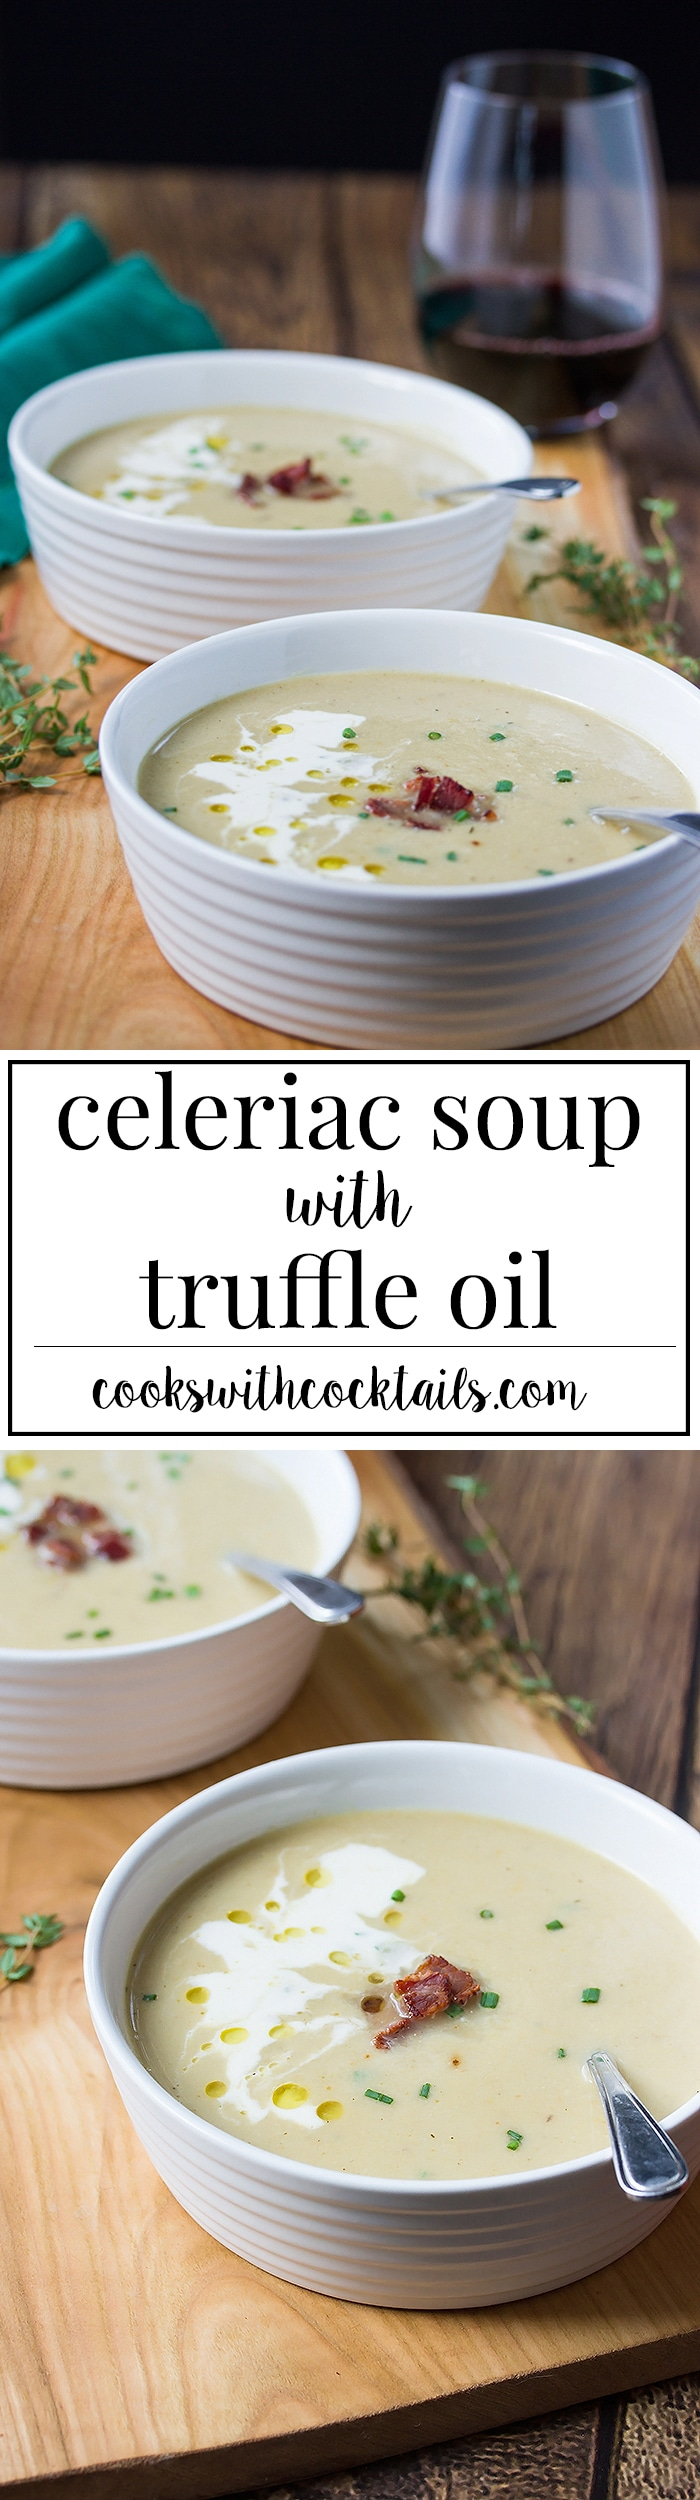 Easy and Healthy Celeriac Soup with Gruyere & Truffle Oil